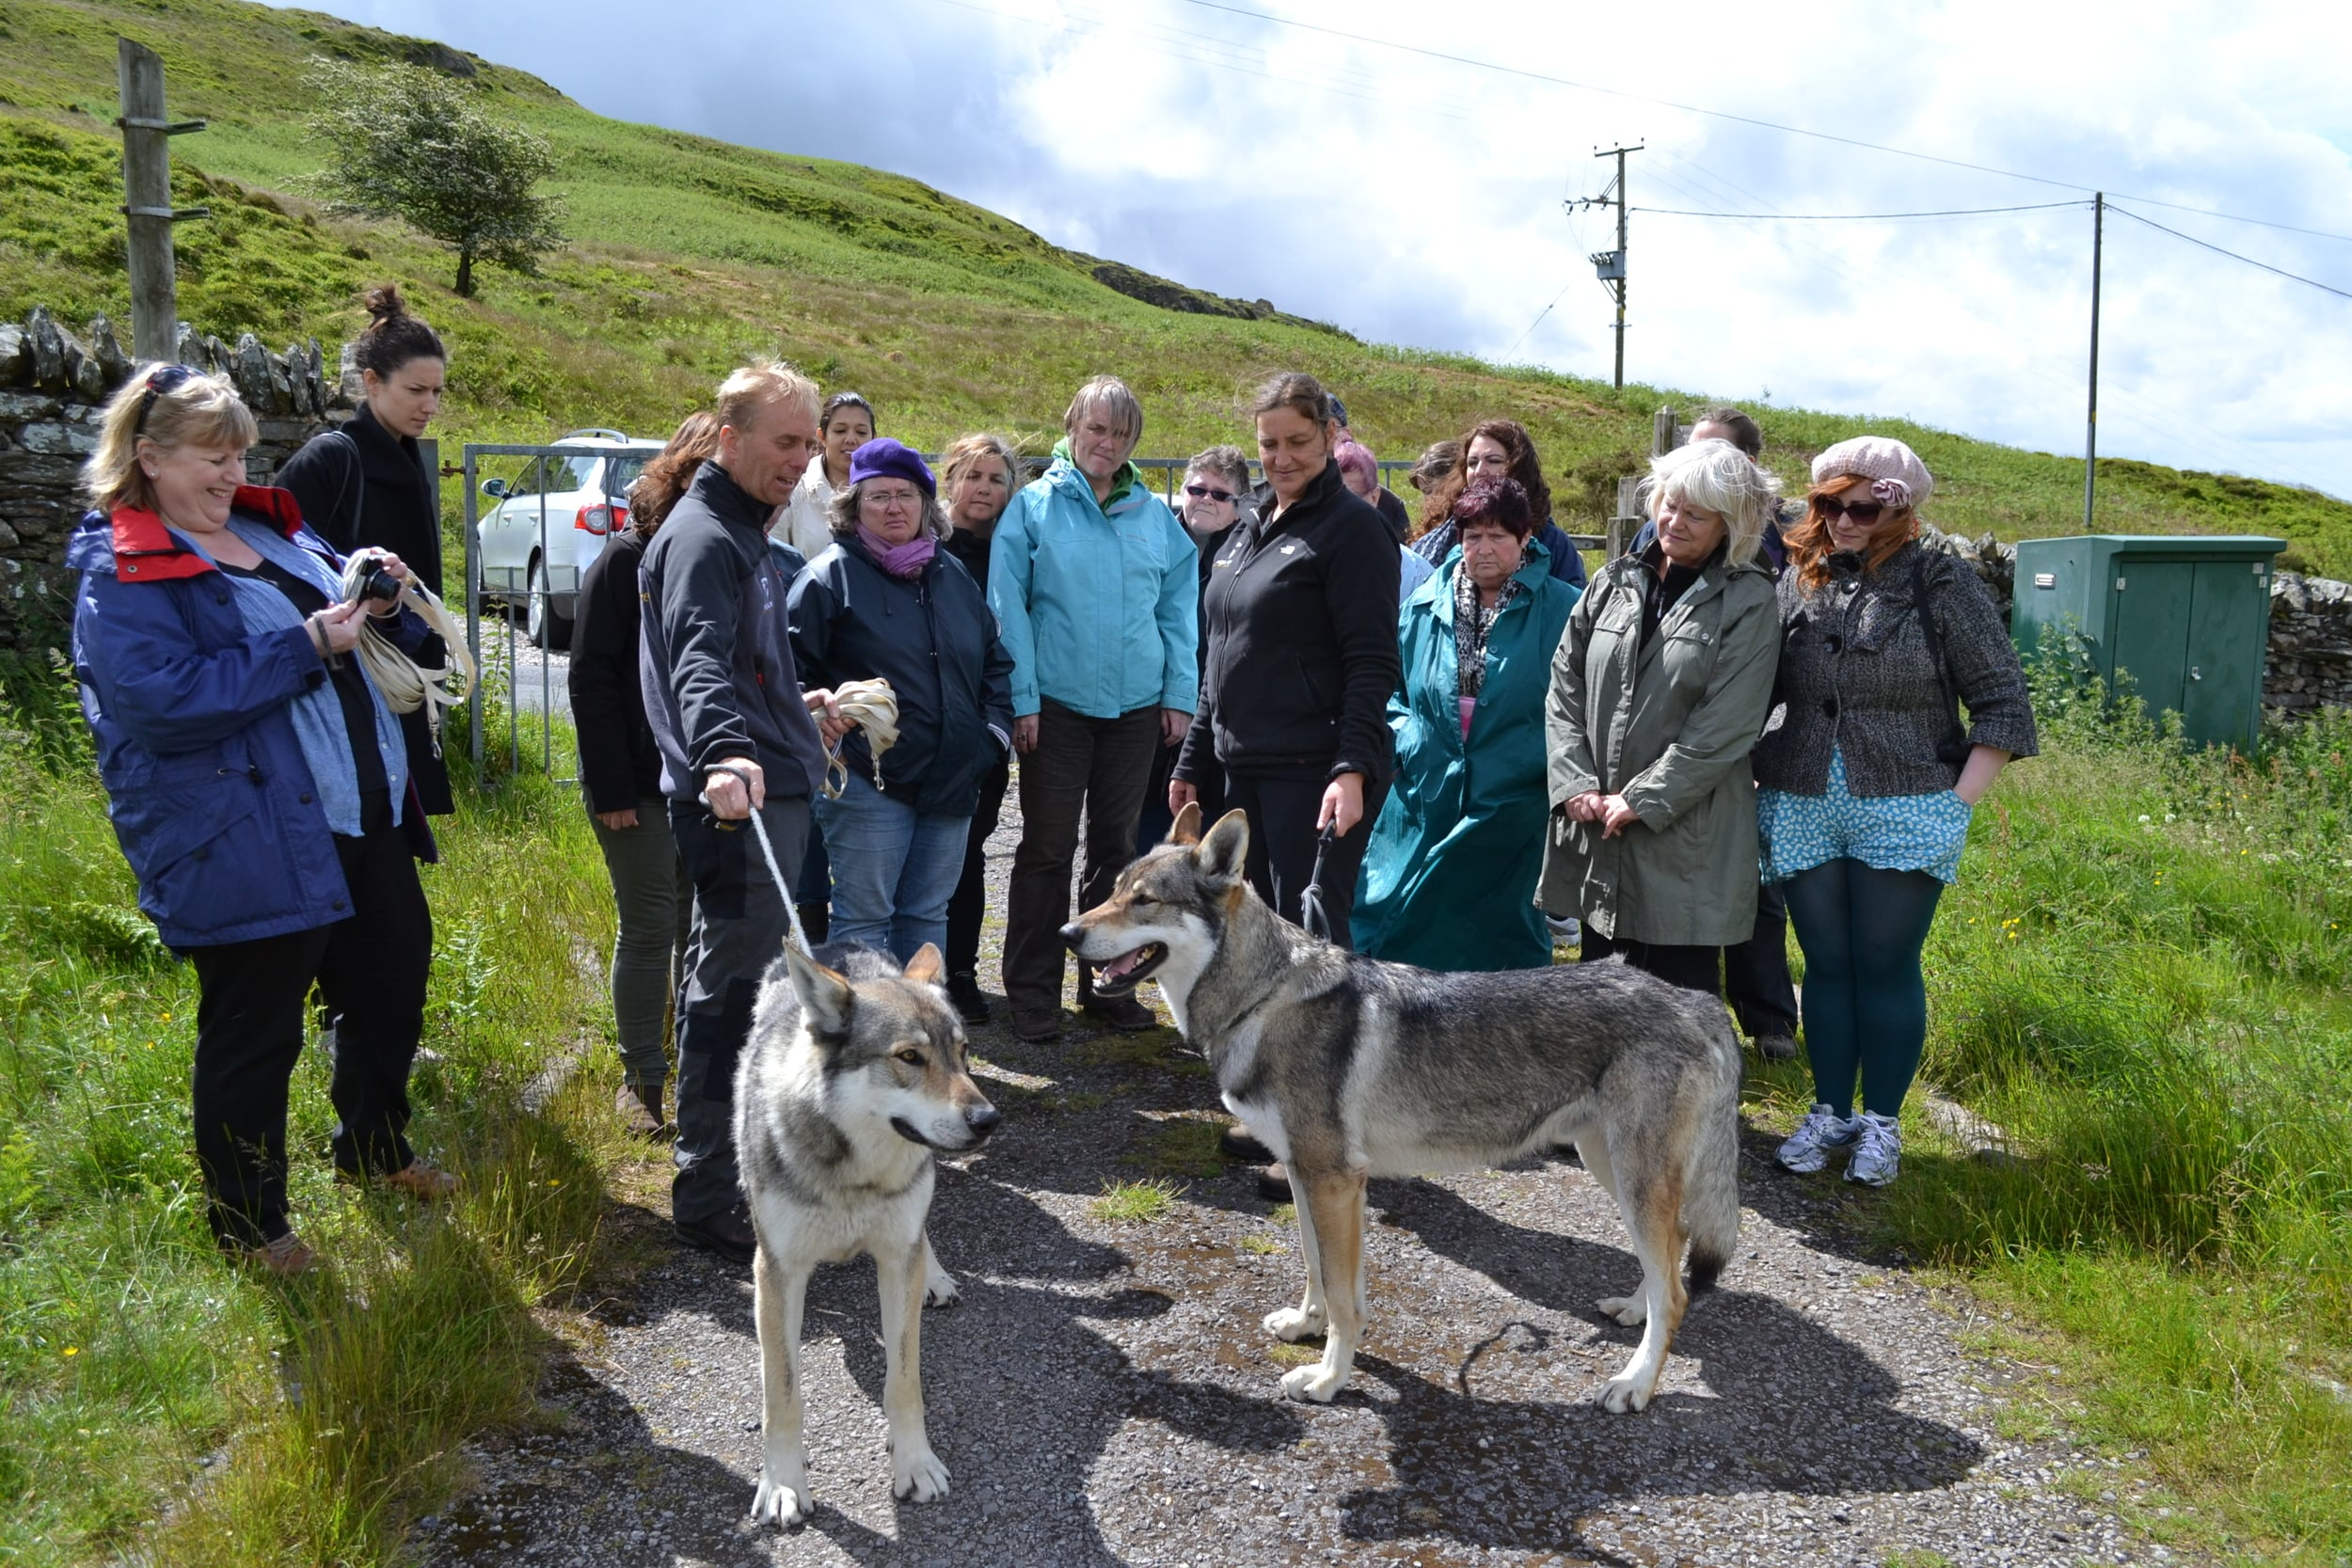 Neck of the Woods research -Walking with Wolves at Predator Experience, Cumbria. Photo: Ange Cobham for Manchester International Festival.